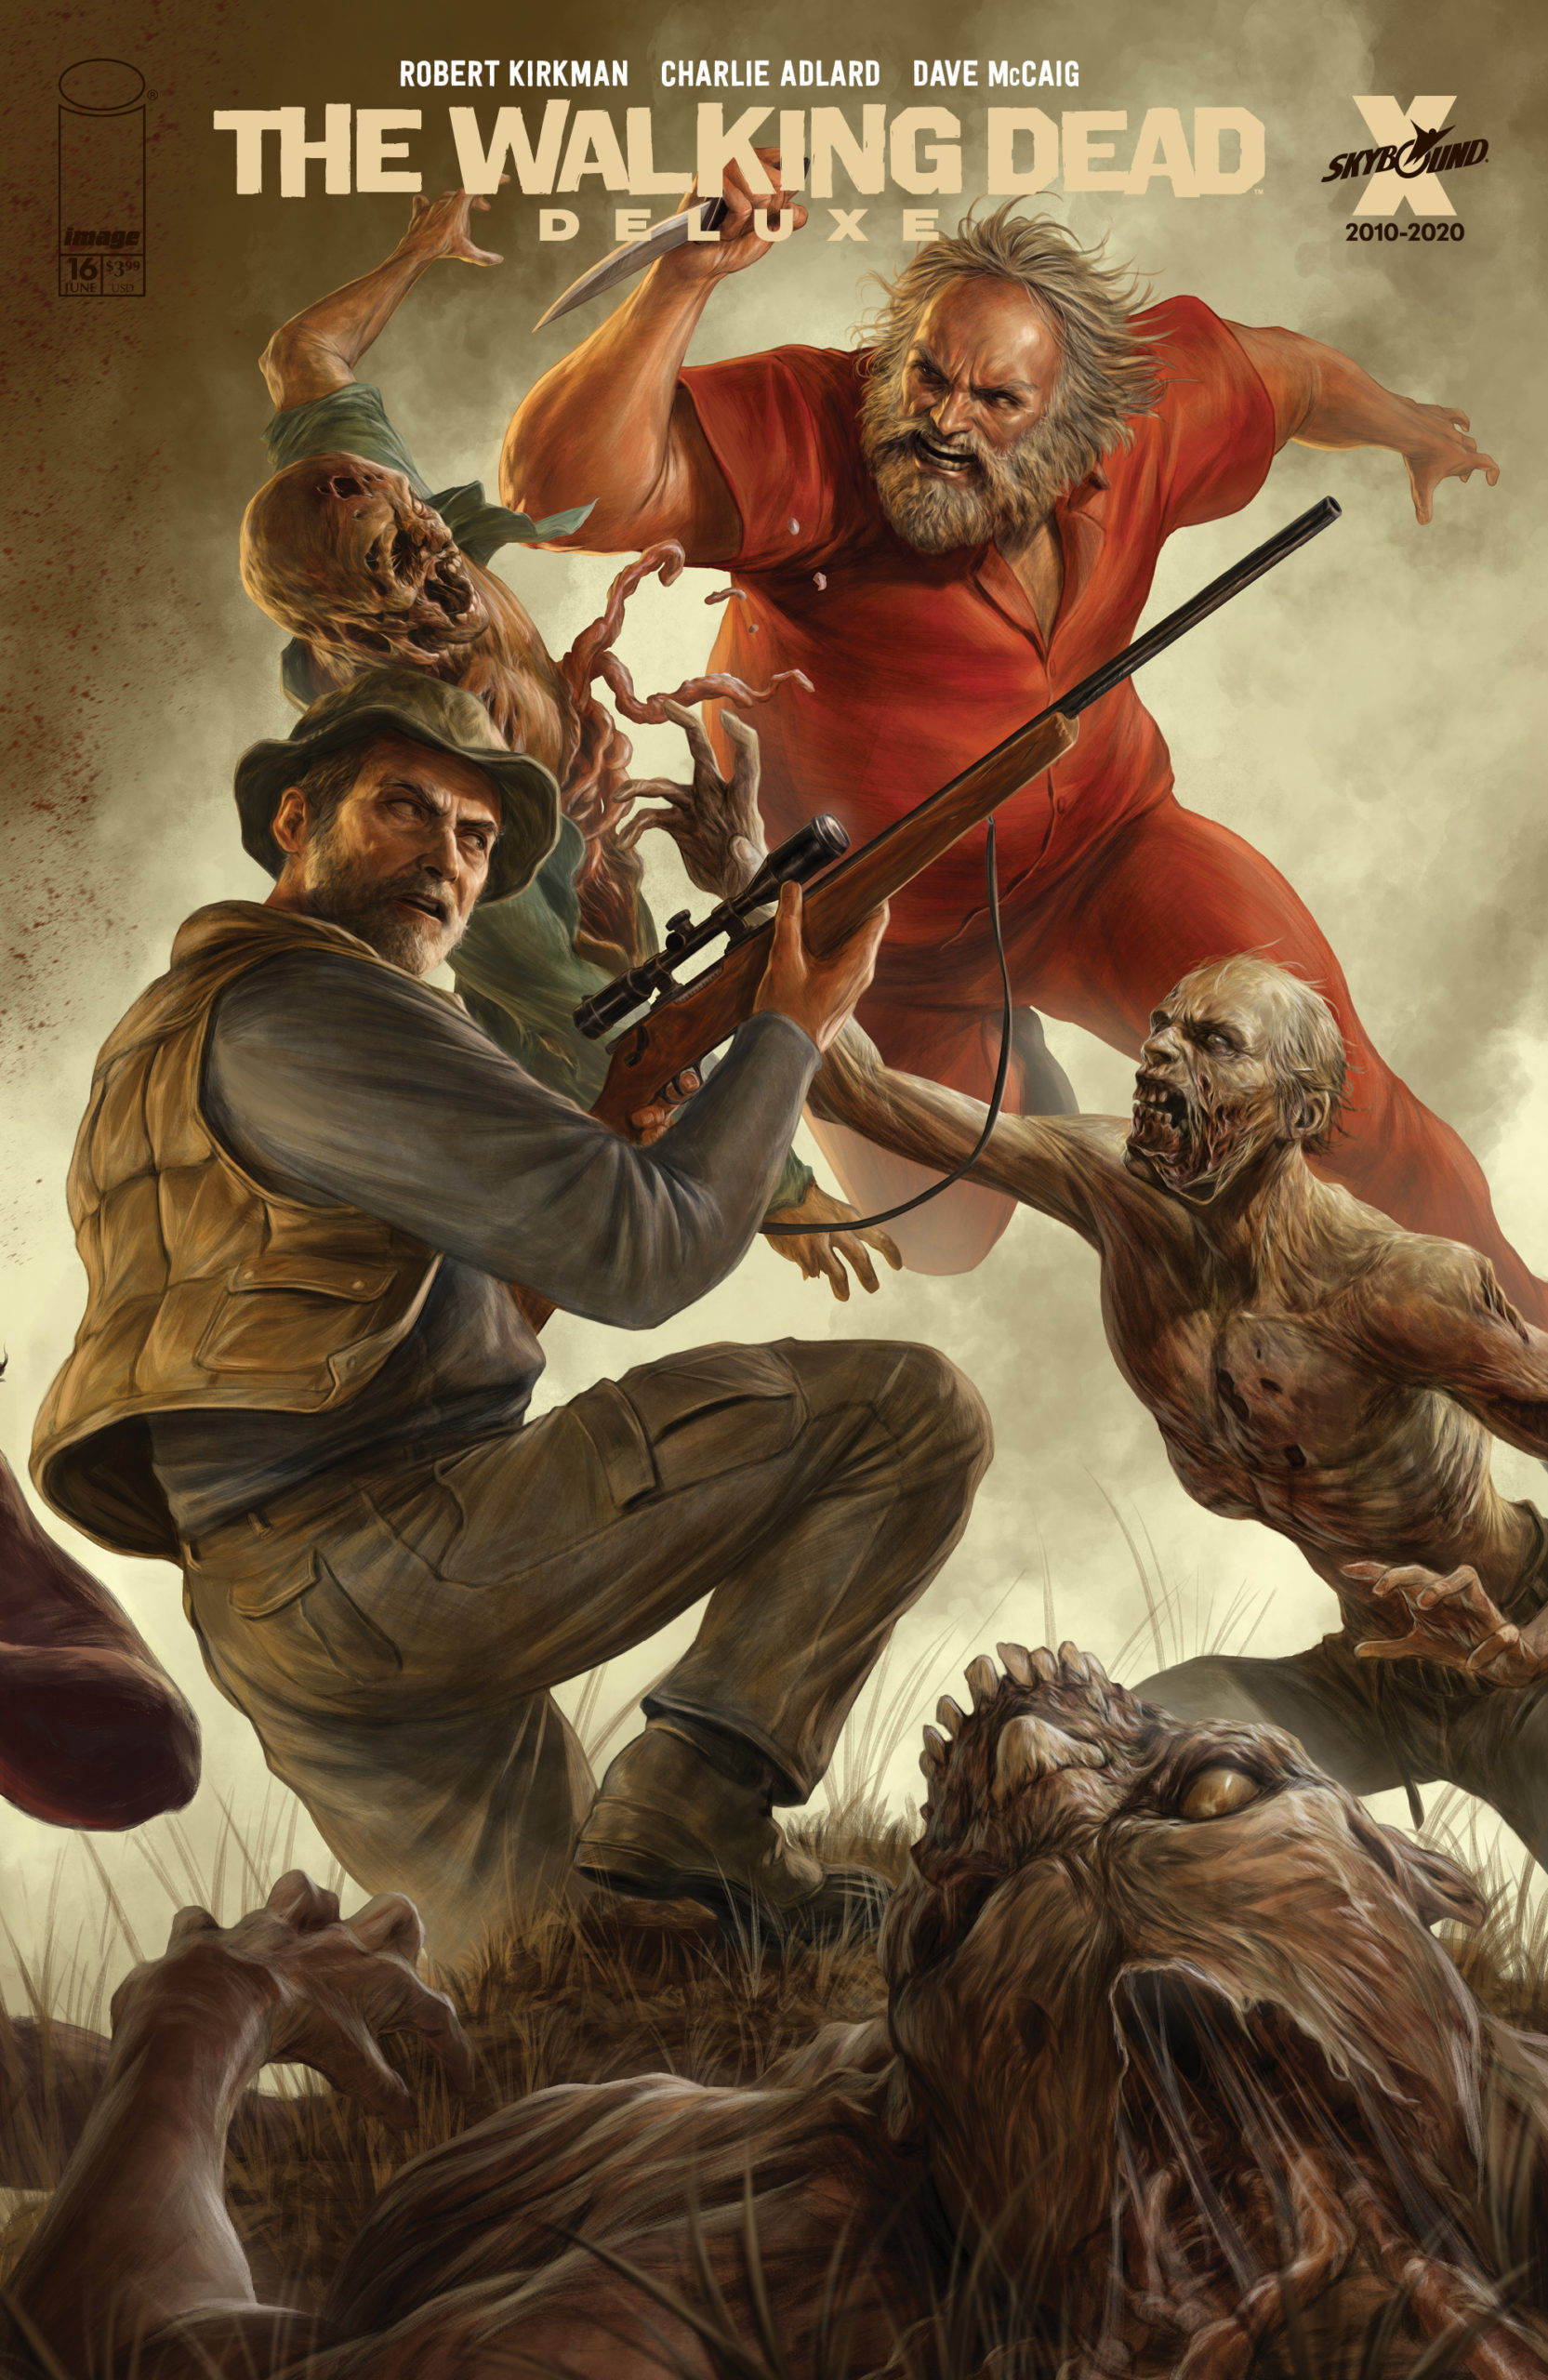 The Walking Dead Ddl : walking, Walking, Deluxe, #13-18, Rapoza, Connecting, Covers, Announced, Skybound, Entertainment